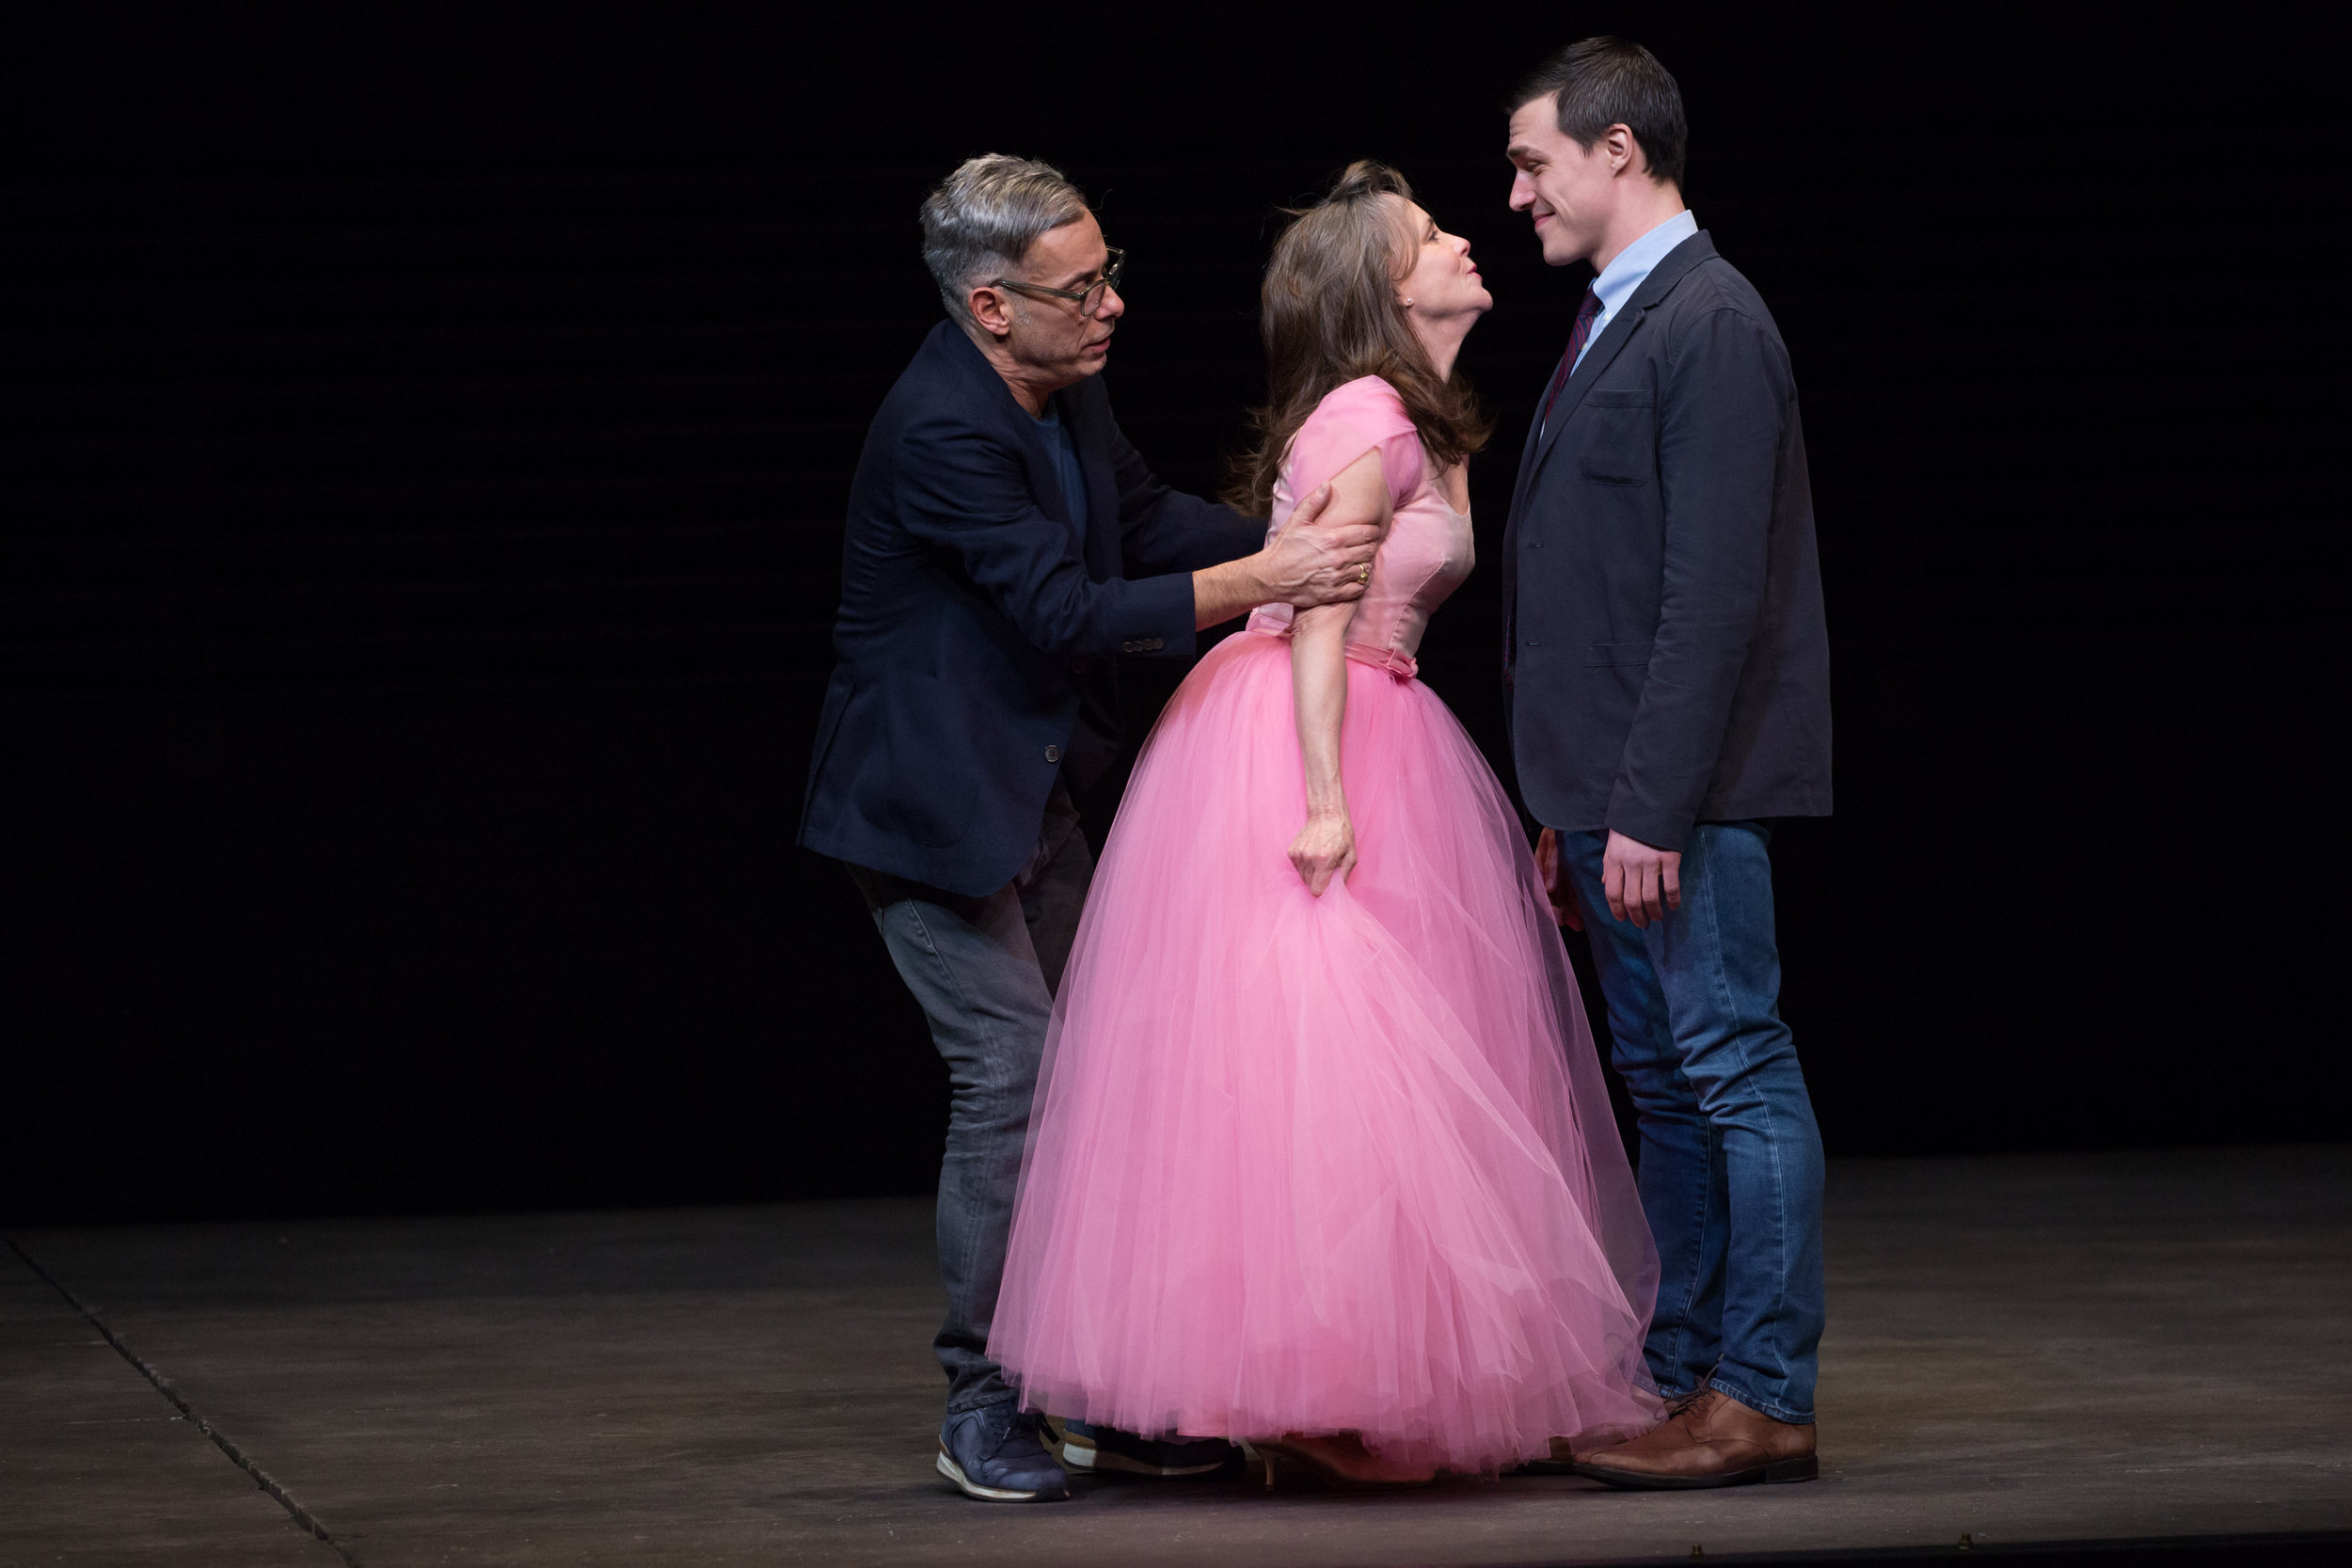 Joe-Mantello-Sally-Field-and-Finn-Wittrock-in-The-Glass-Menagerie-Photo-by-Julieta-Cervantes.jpg